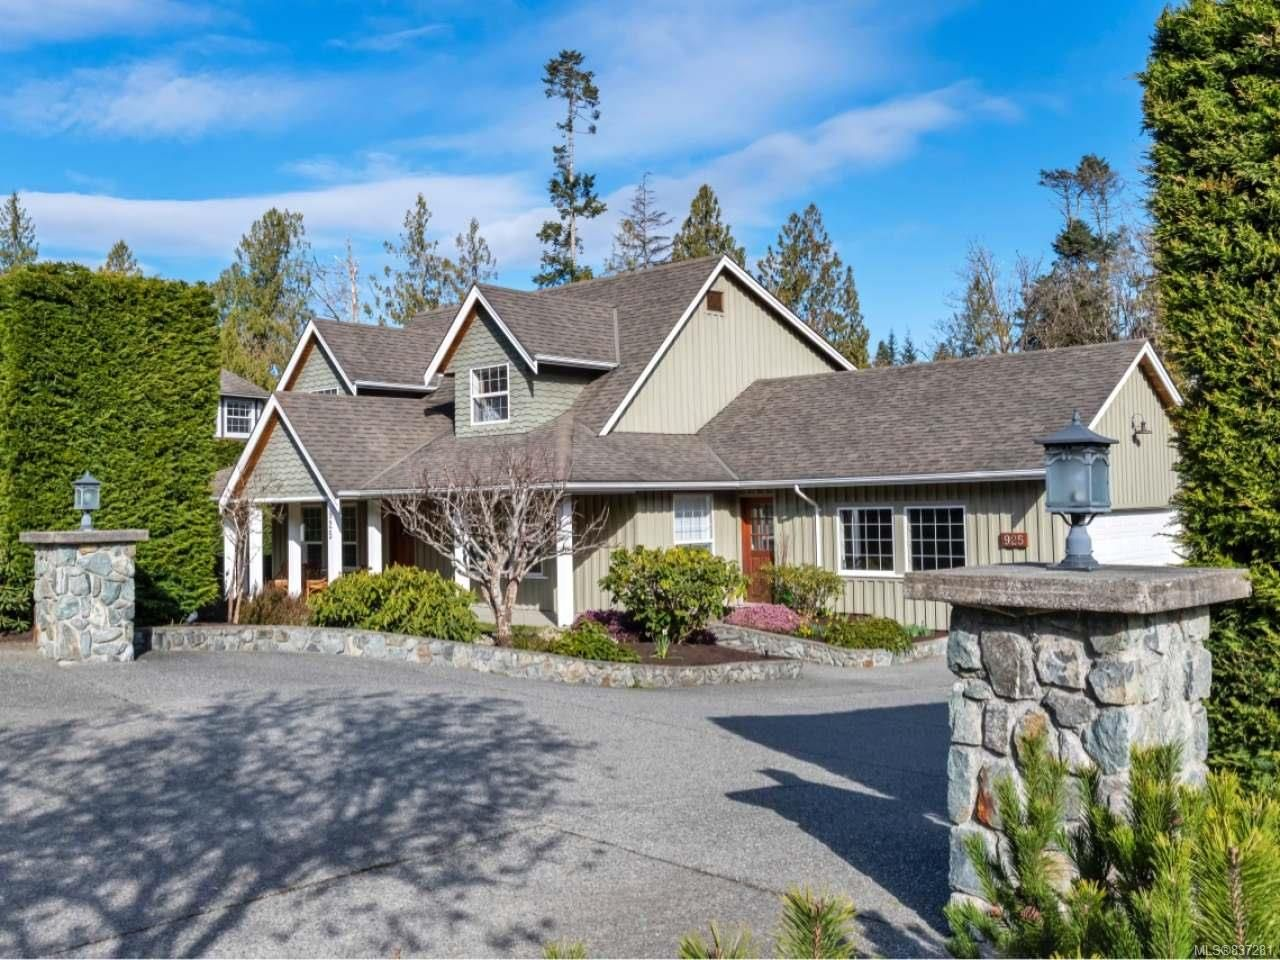 Photo 1: Photos: 925 Lilmac Rd in MILL BAY: ML Mill Bay House for sale (Malahat & Area)  : MLS®# 837281